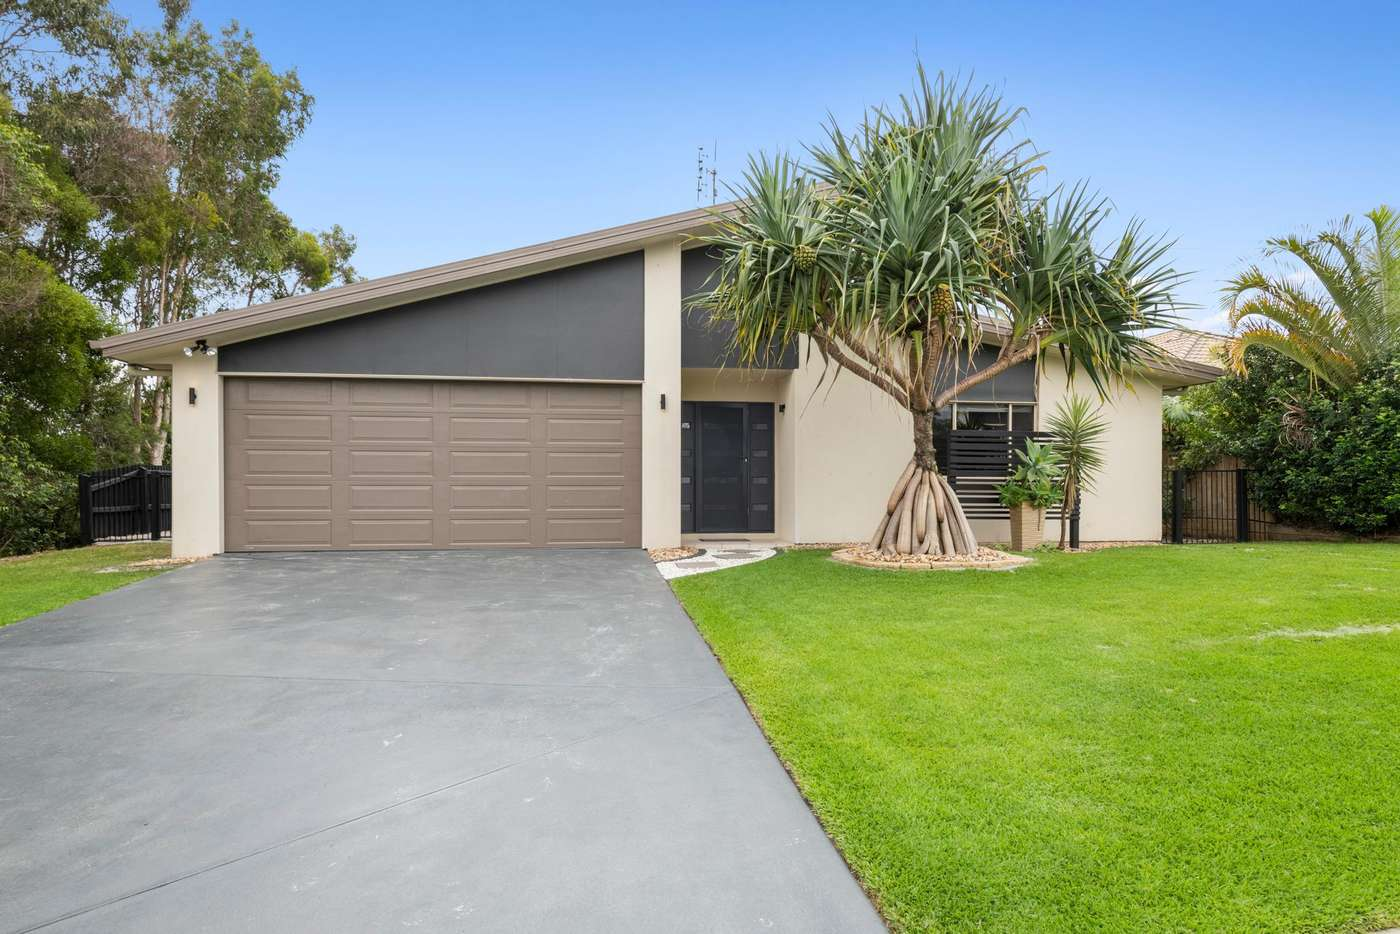 Main view of Homely house listing, 18 Cullen Drive, Little Mountain QLD 4551